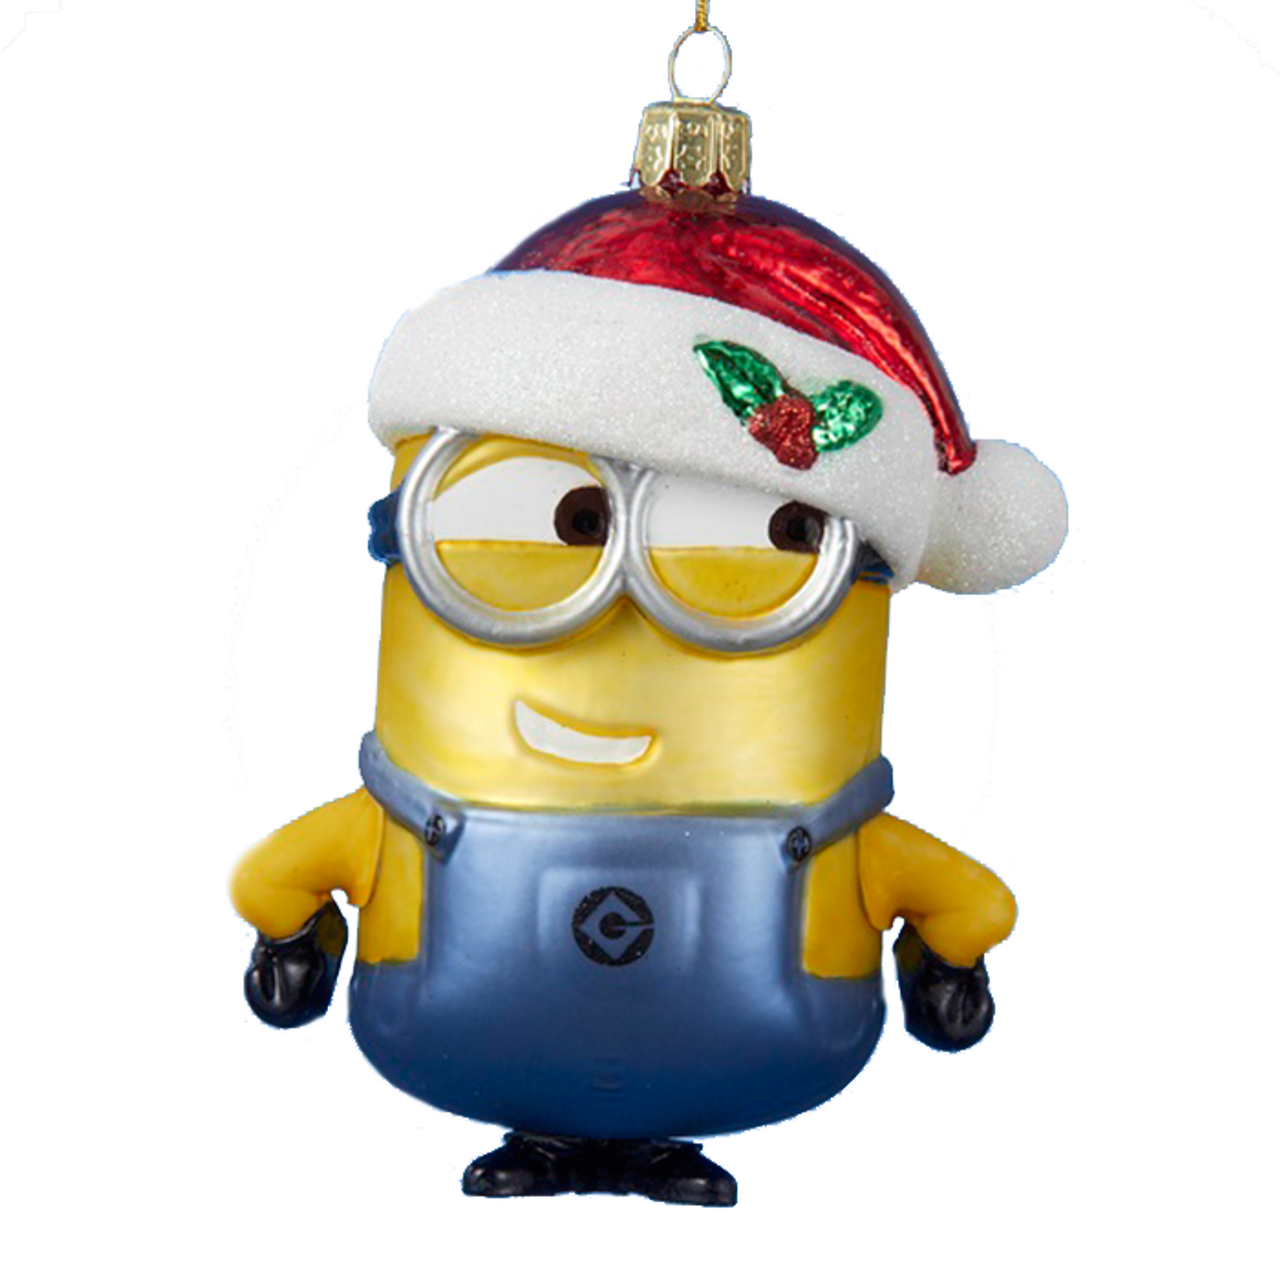 Despicable Me Minion 5-Inch Glass Holiday Ornament.